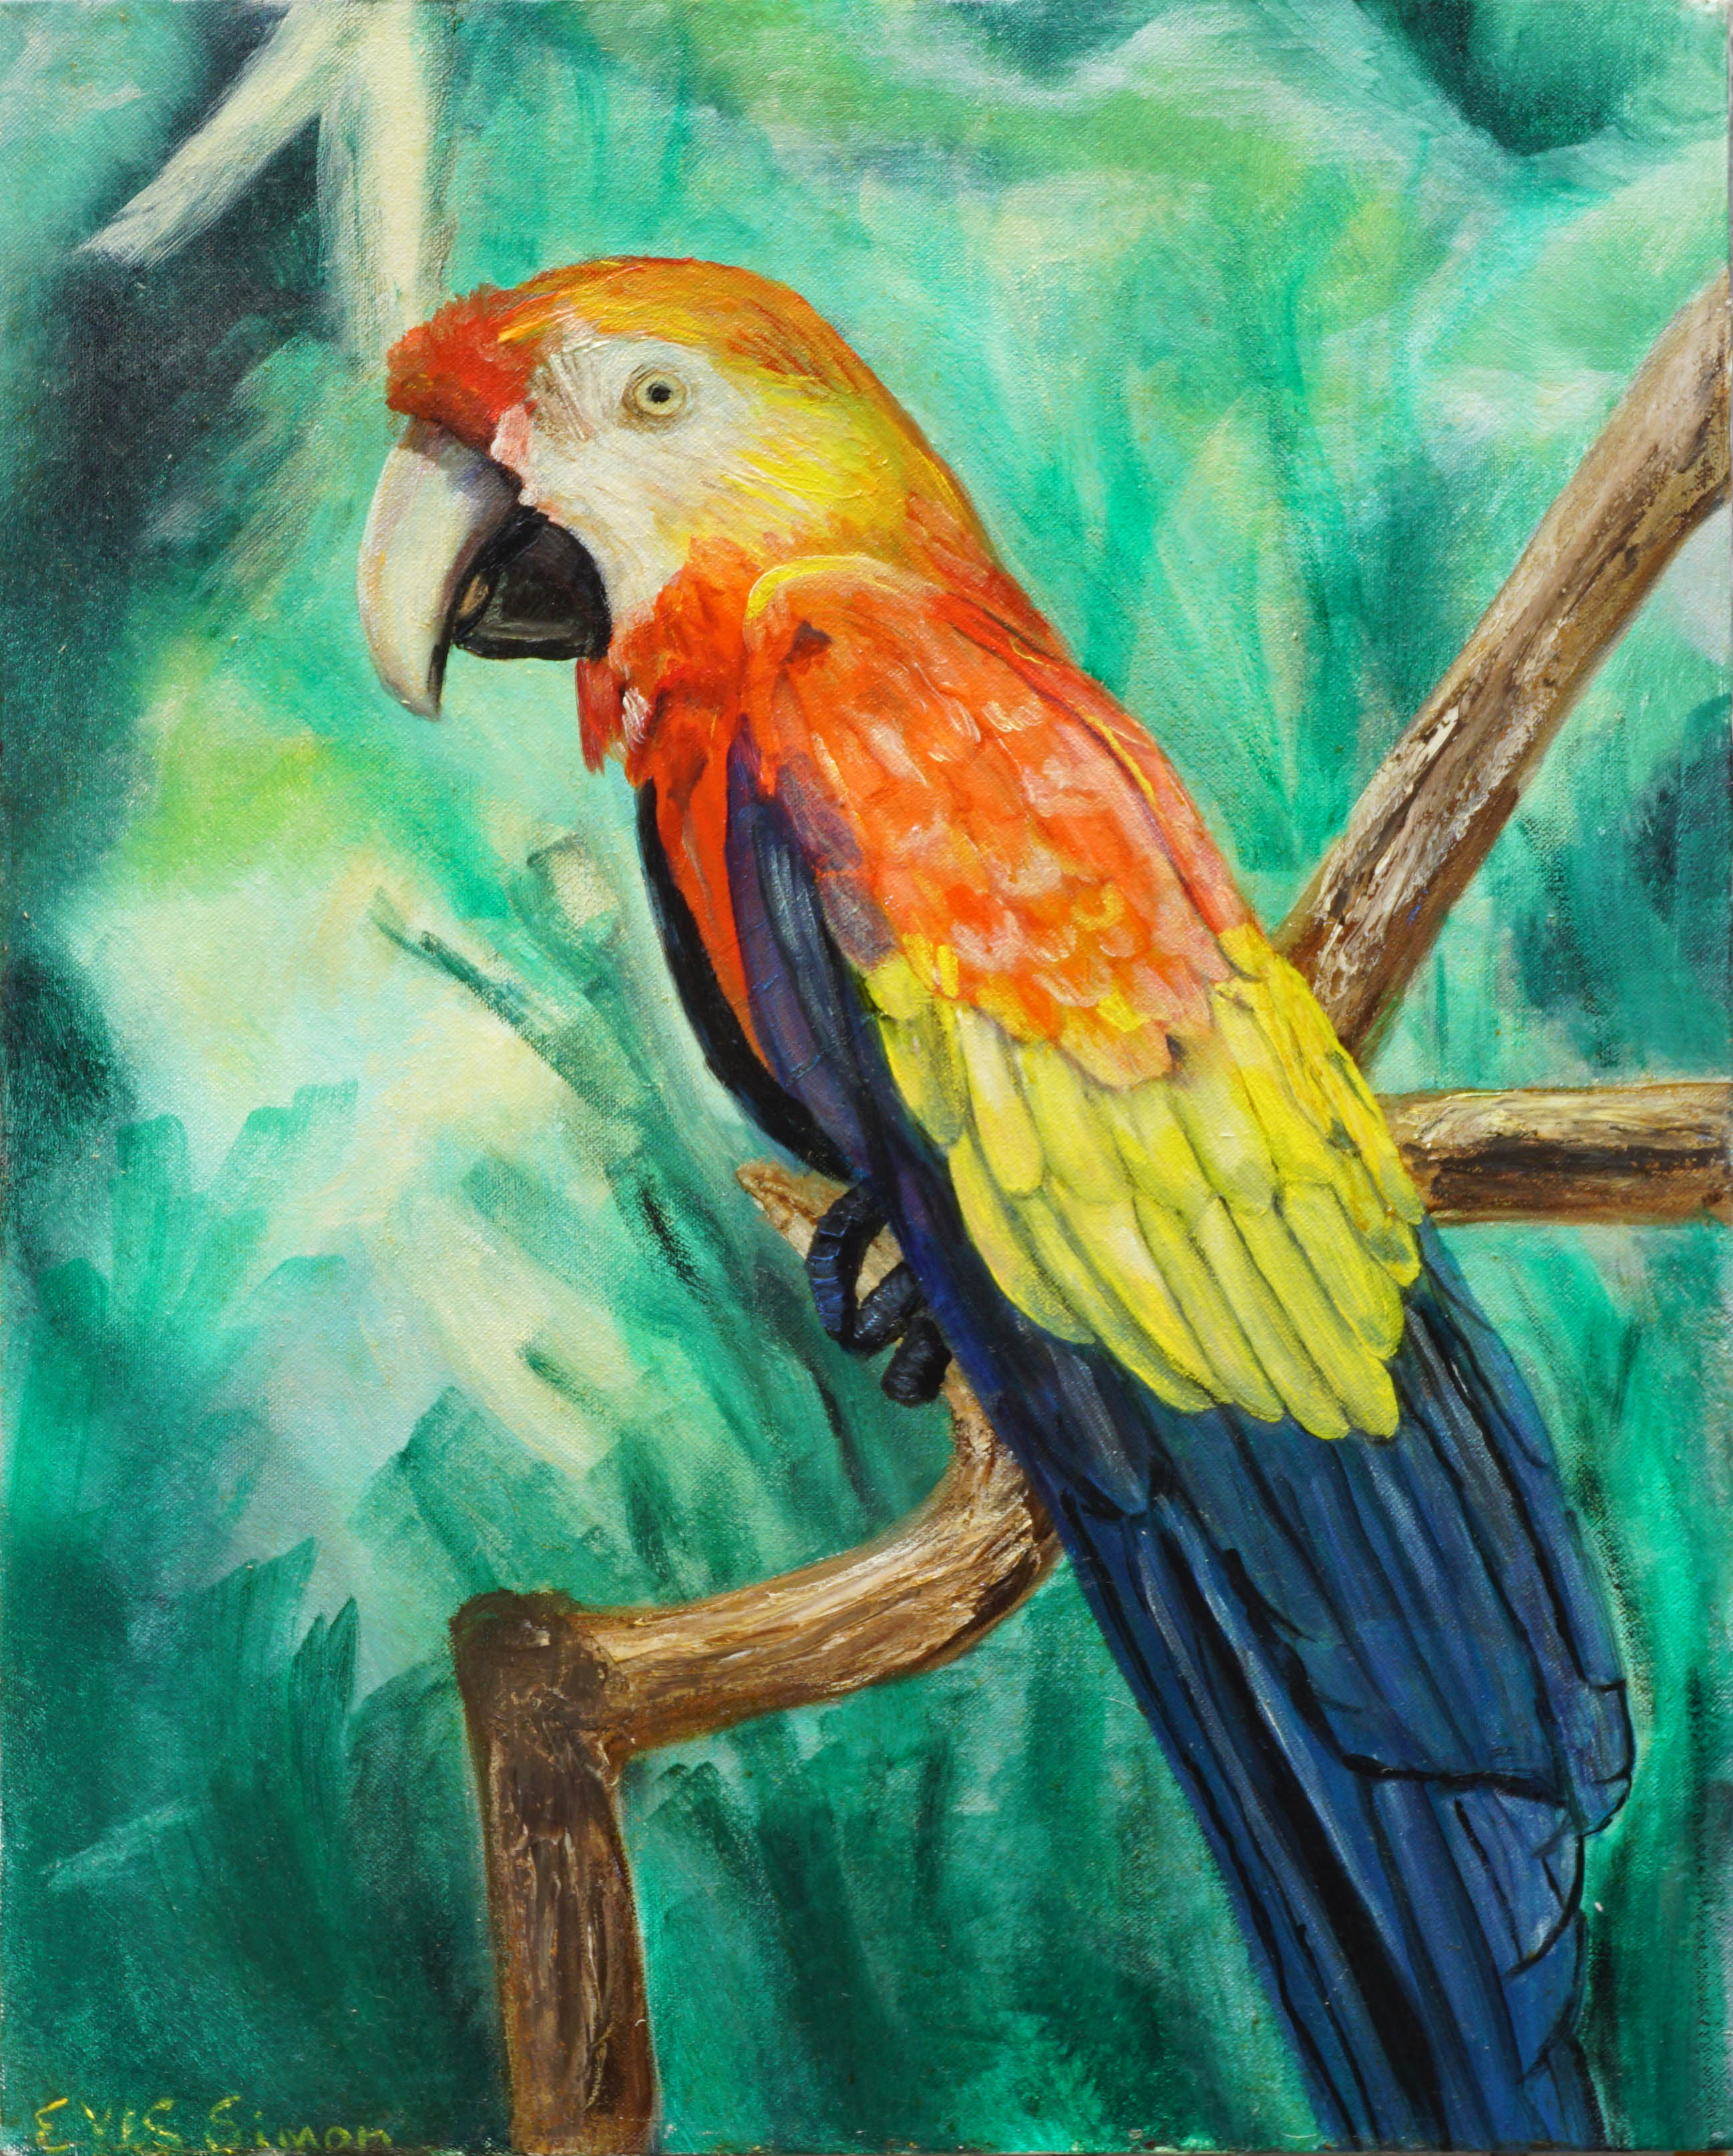 Macaw Parrott by Eves Simon